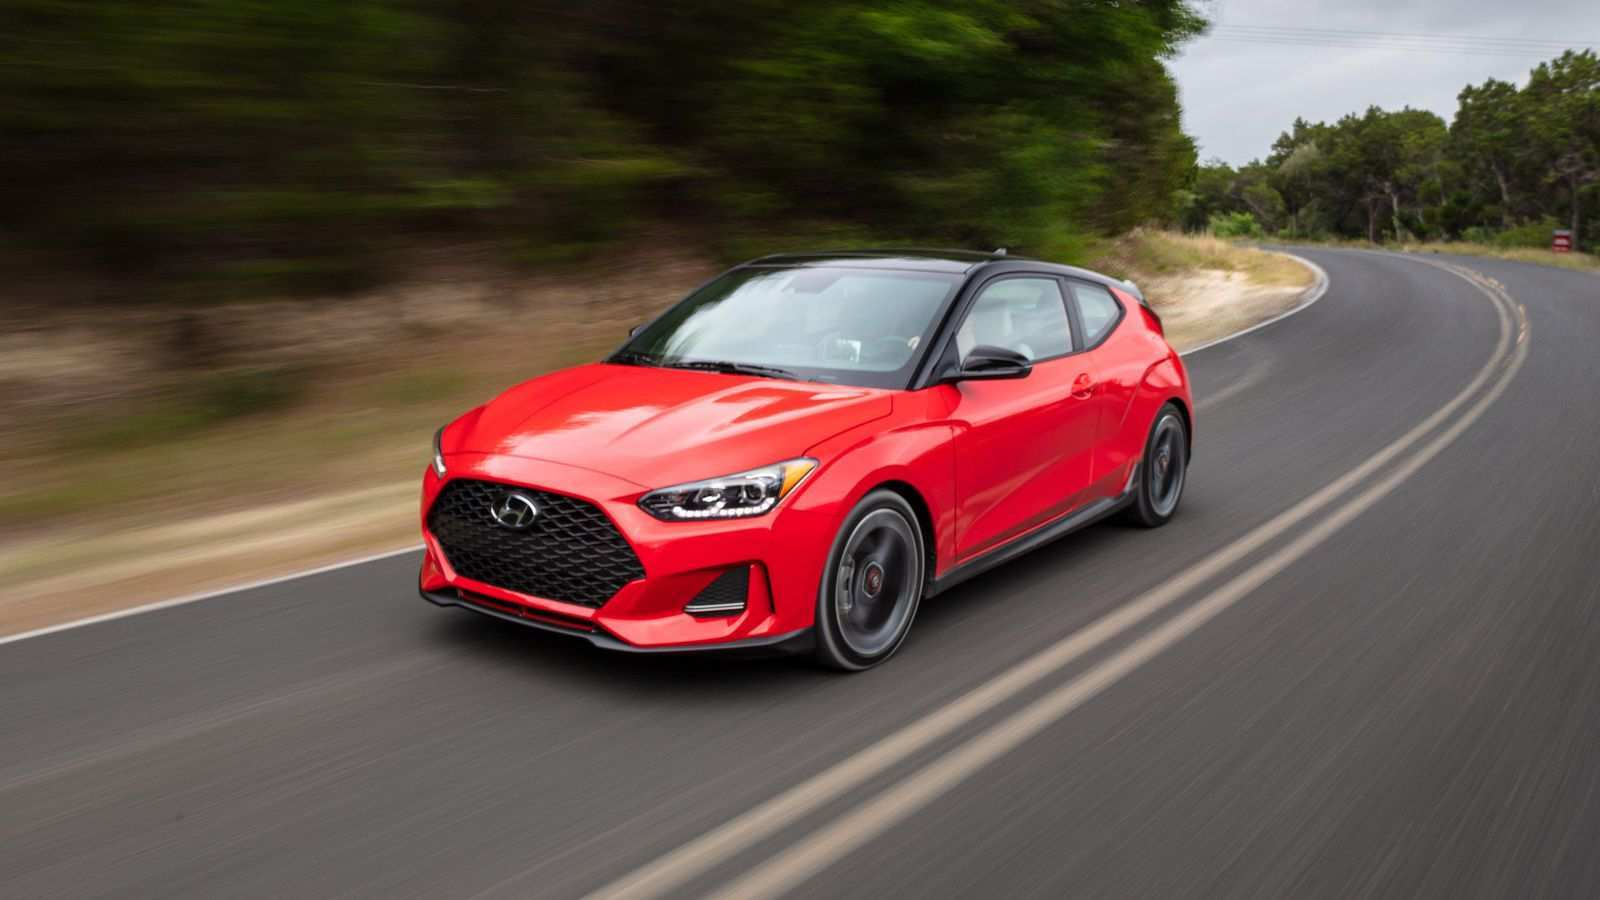 79 The 2019 Hyundai Veloster Review Model